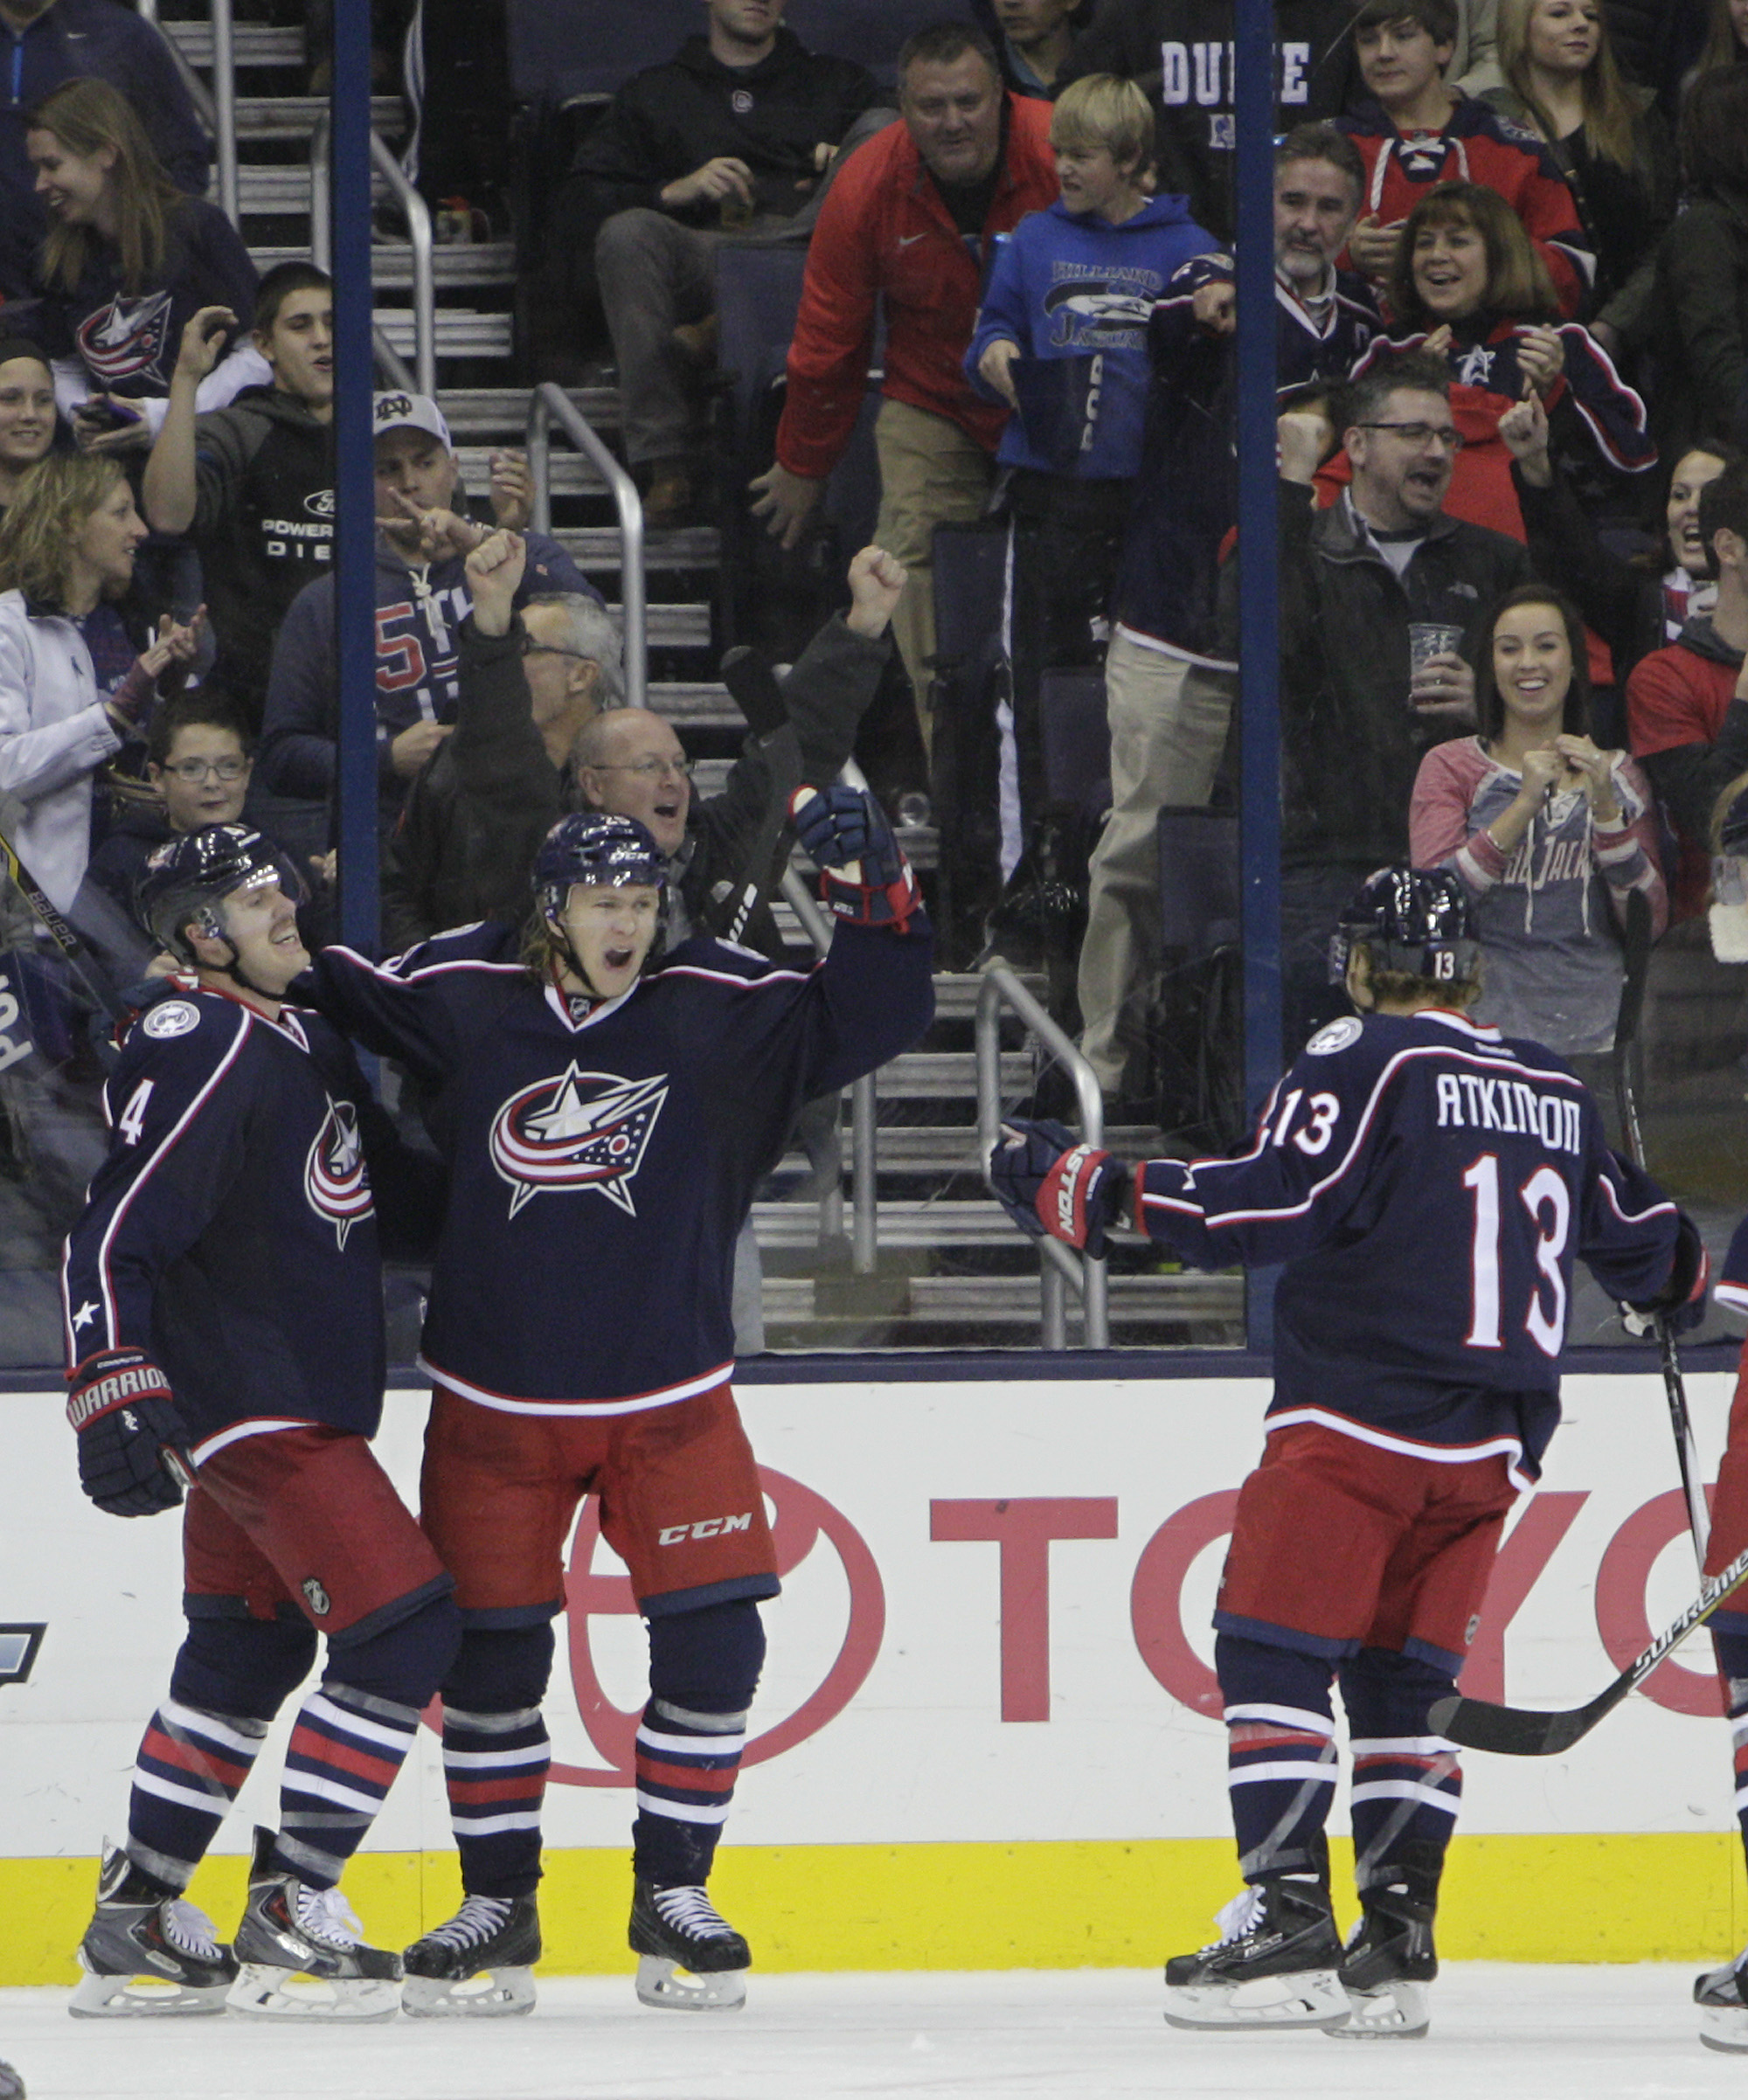 Columbus Blue Jackets' William Karlsson, center, of Sweden, celebrates his goal against the Arizona Coyotes with teammates Kevin Connauton, left, and Cam Atkinson during the third period of an NHL hockey game Saturday, Nov. 14, 2015, in Columbus, Ohio. Th